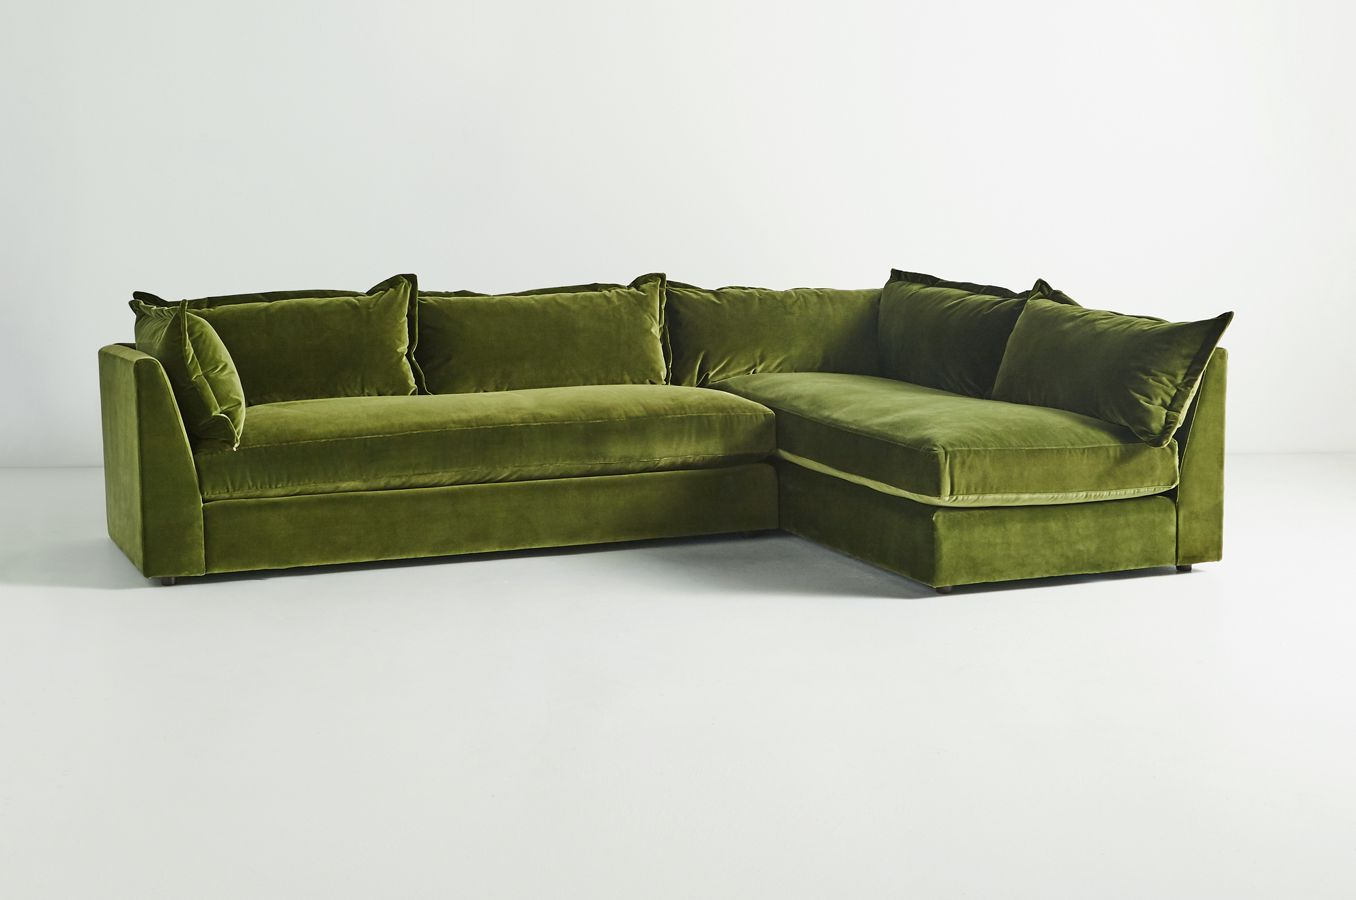 Fine Denver L Shaped Sectional In 2019 The King L Shaped Pabps2019 Chair Design Images Pabps2019Com